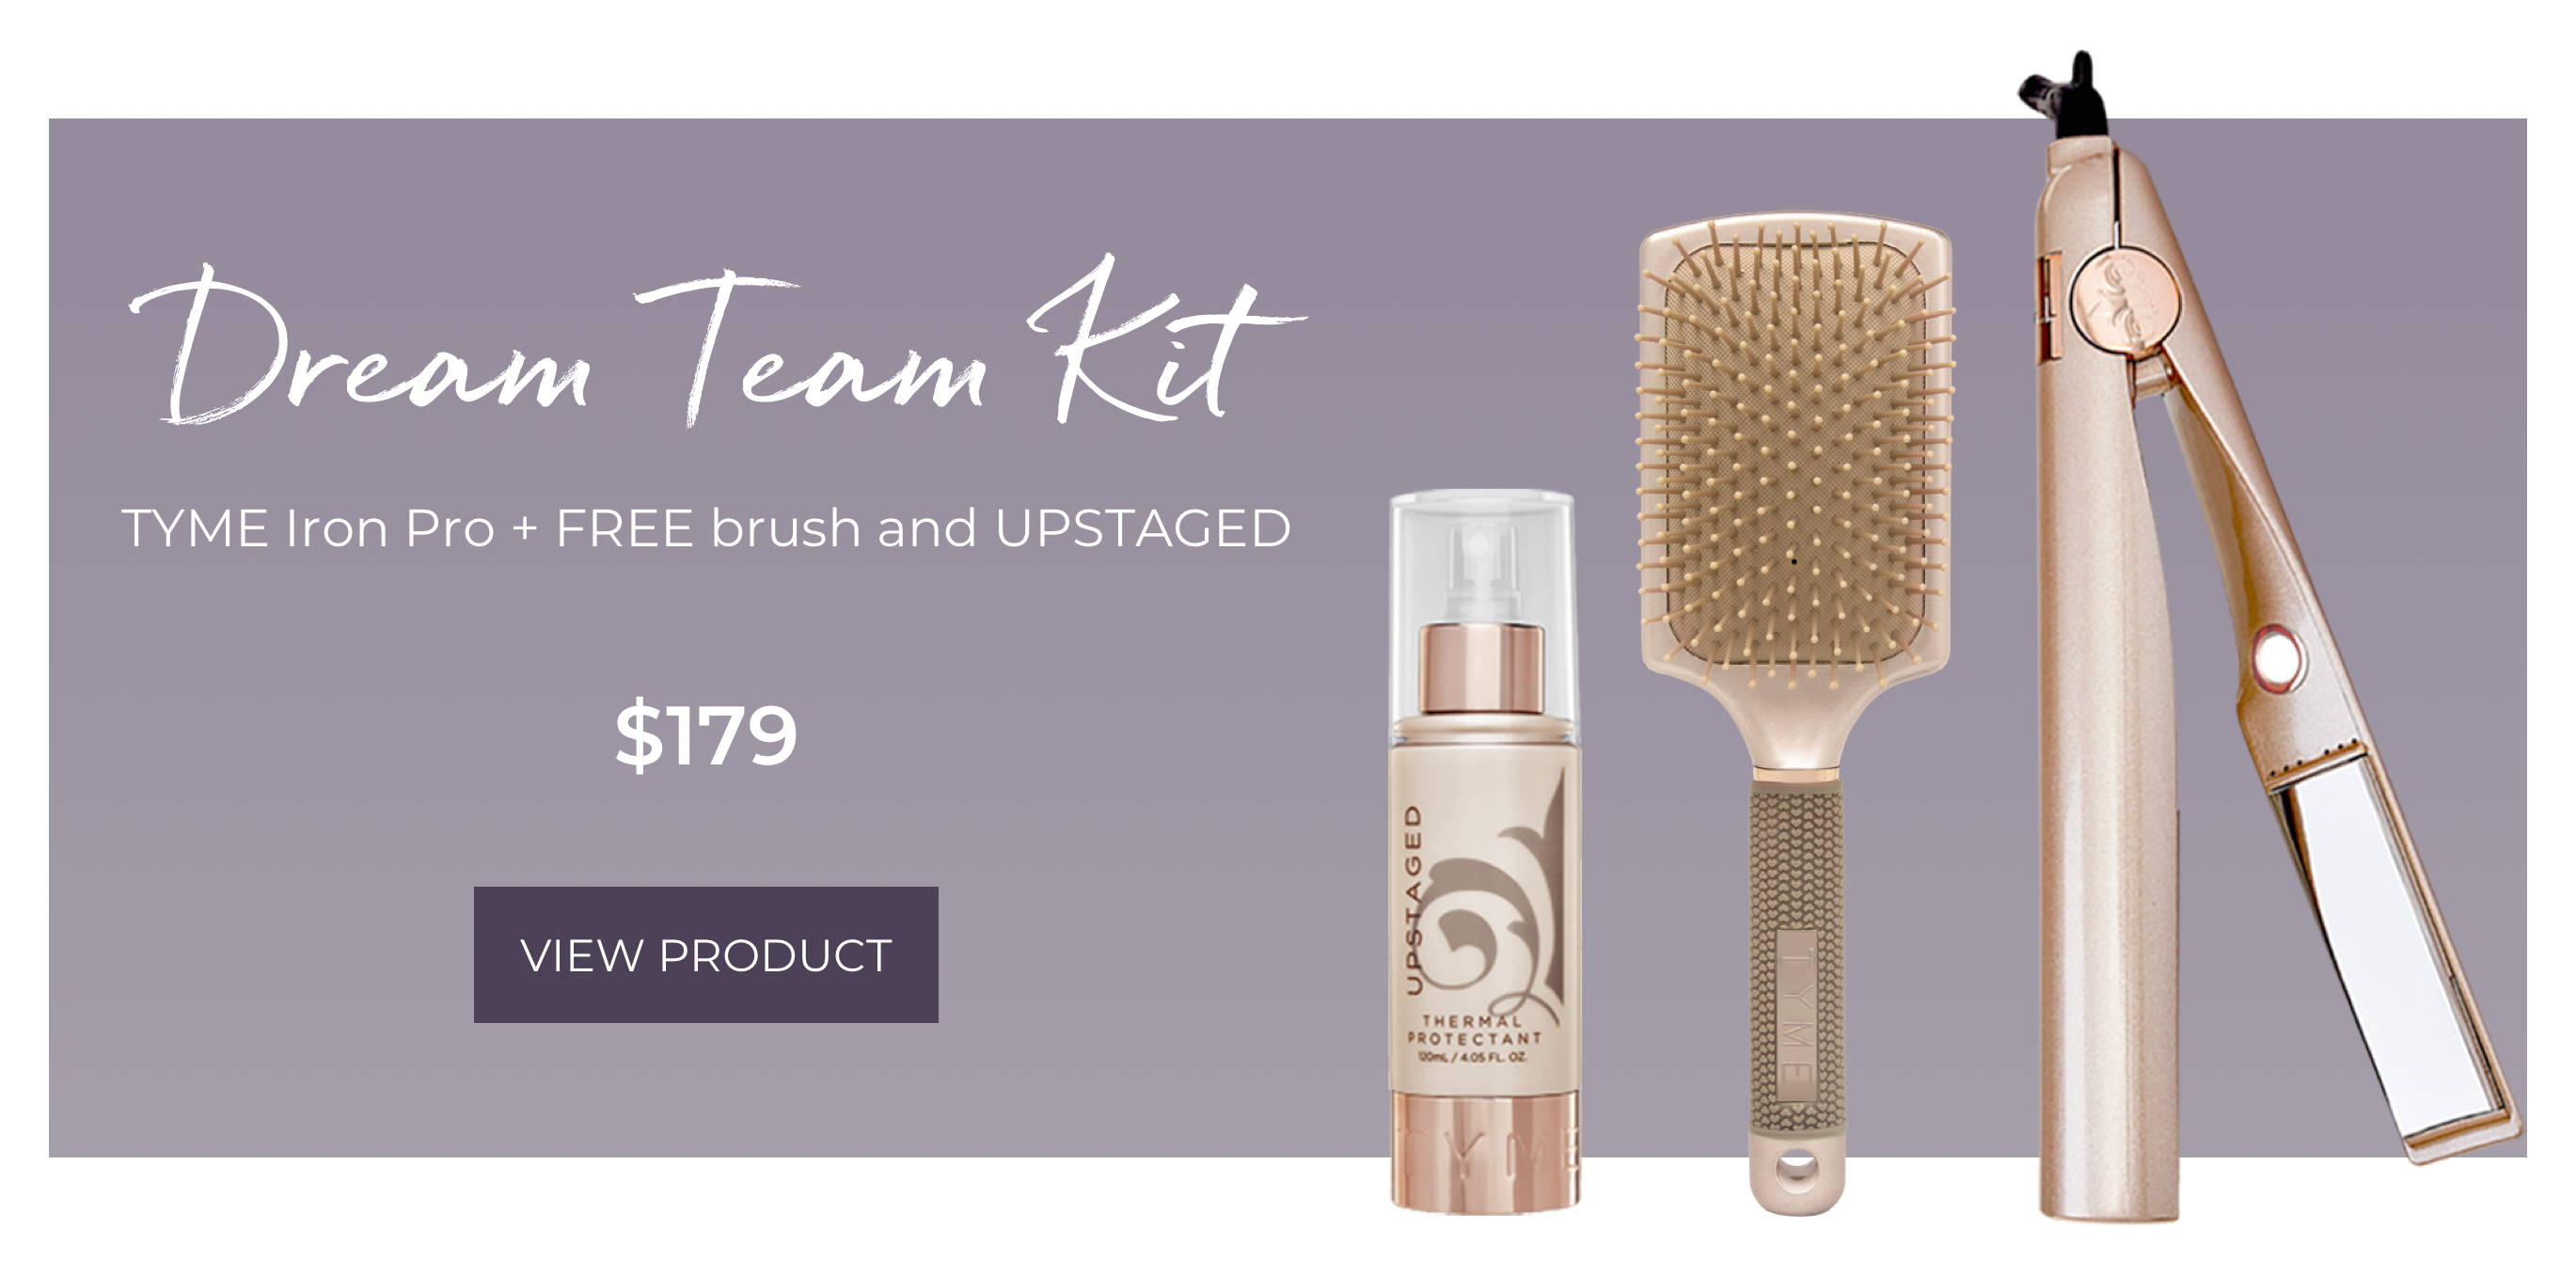 Dream Team Kit featuring TYME iron Pro and free brush and upstaged thermal protectant